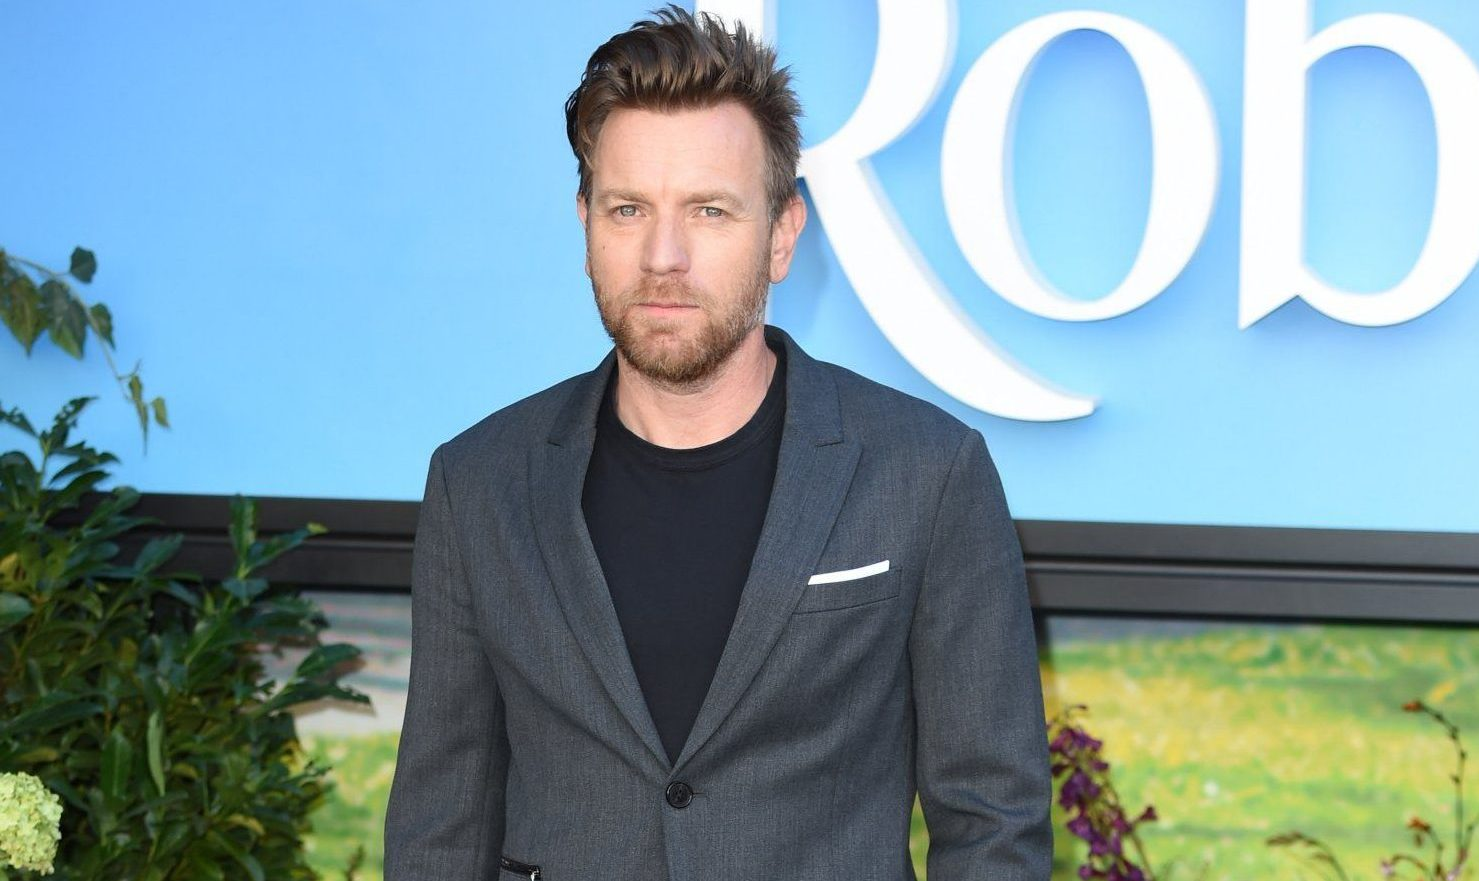 Ewan McGregor spends time with children after daughter calls new girlfriend 'a piece of trash'